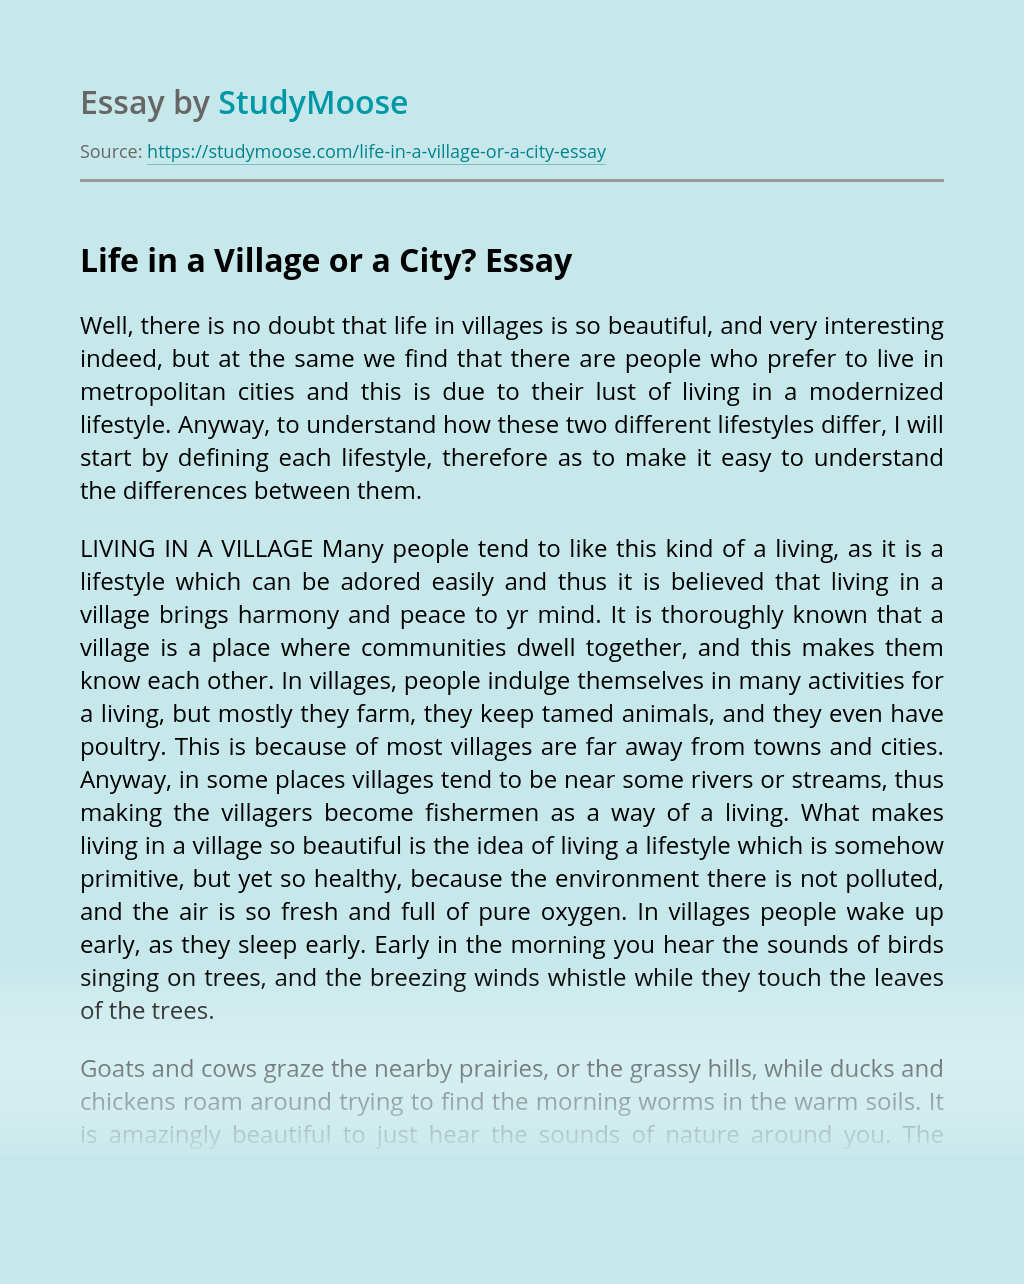 Life in a Village or a City?